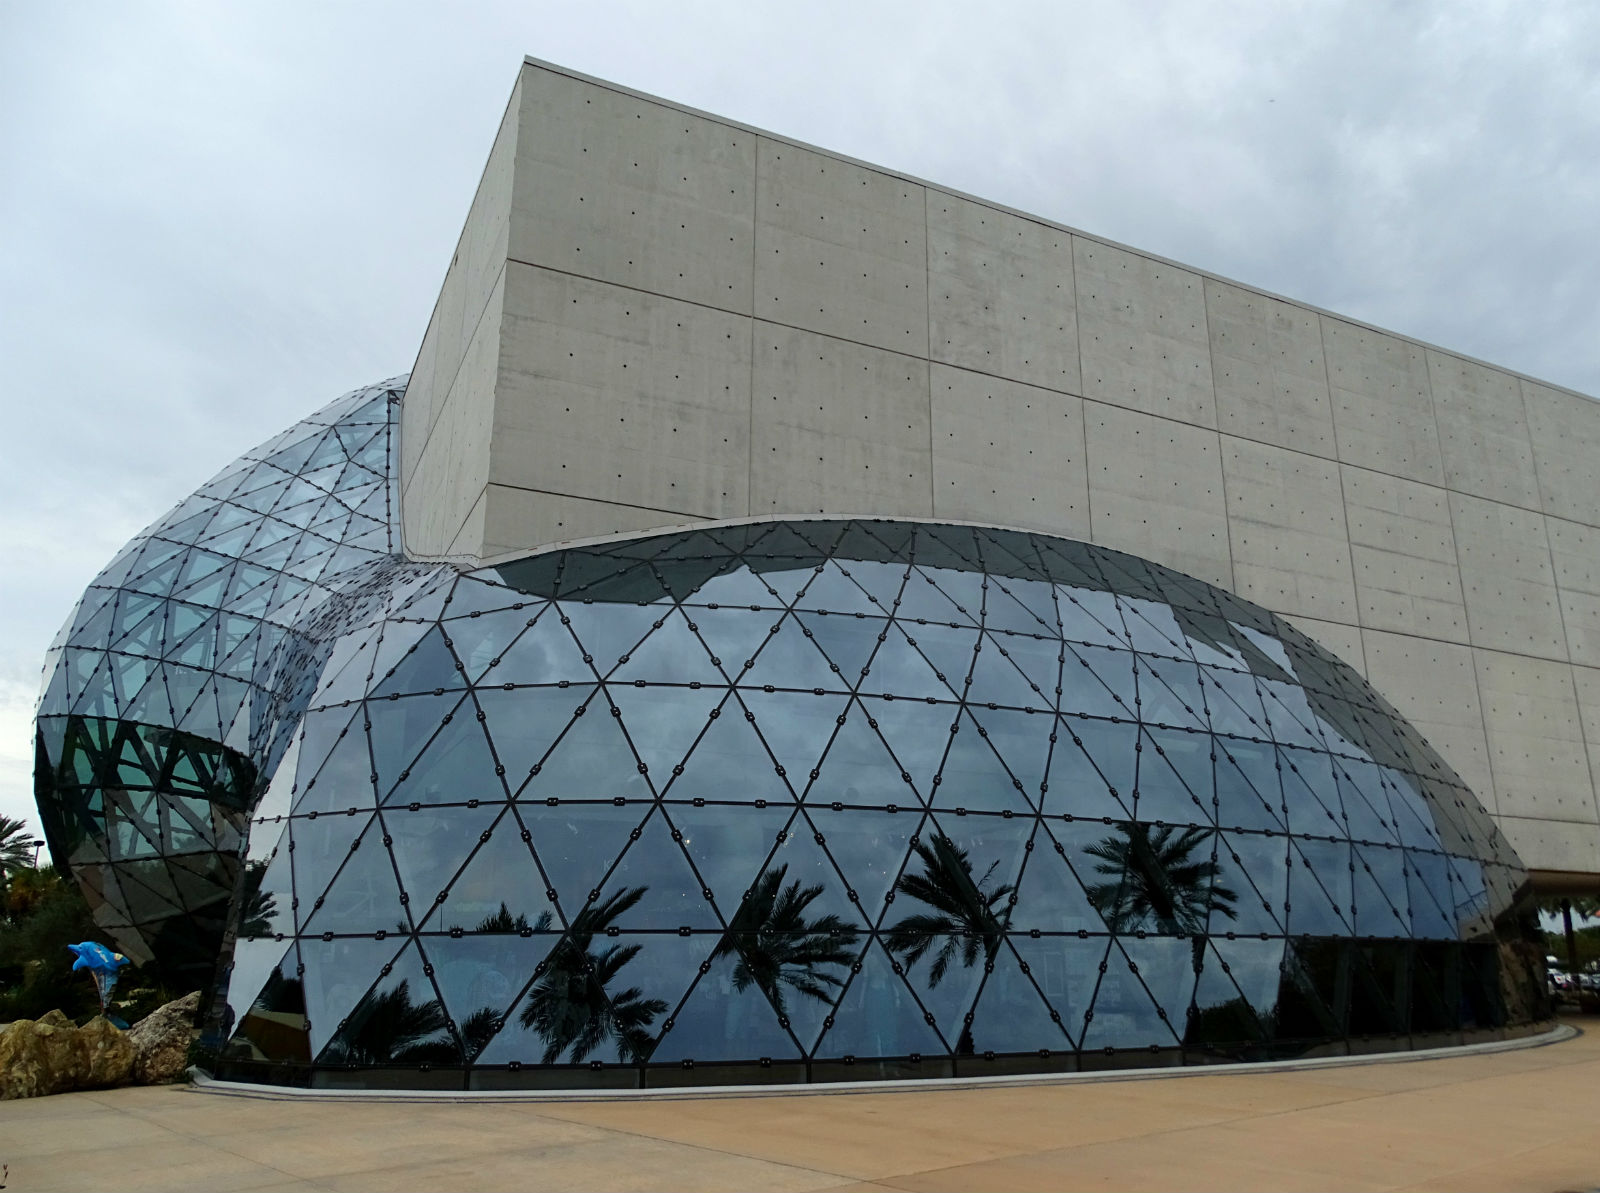 Dalí Museum in St. Petersburg, Florida